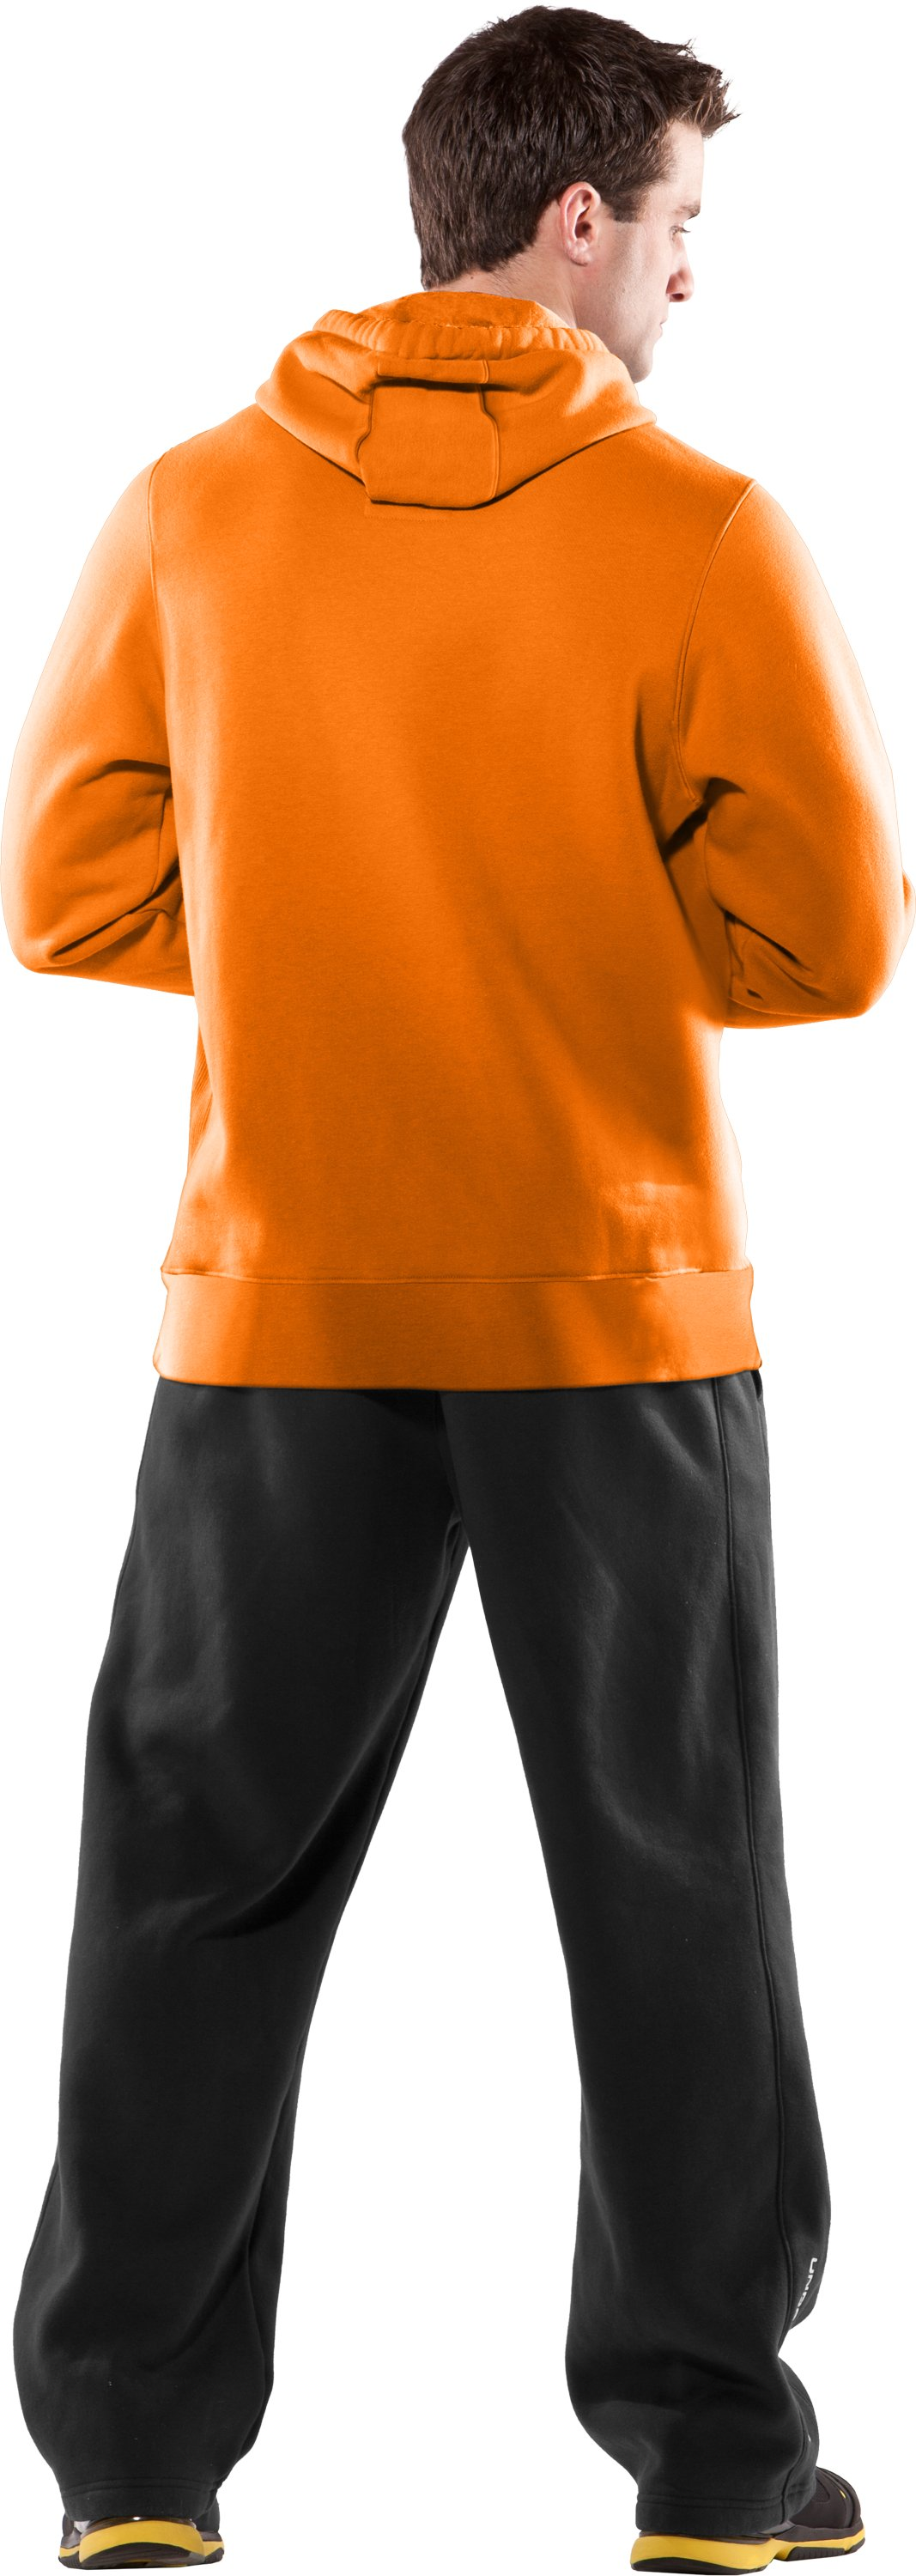 Men's Armour® Fleece Blaze Hoodie, Blaze Orange, Back